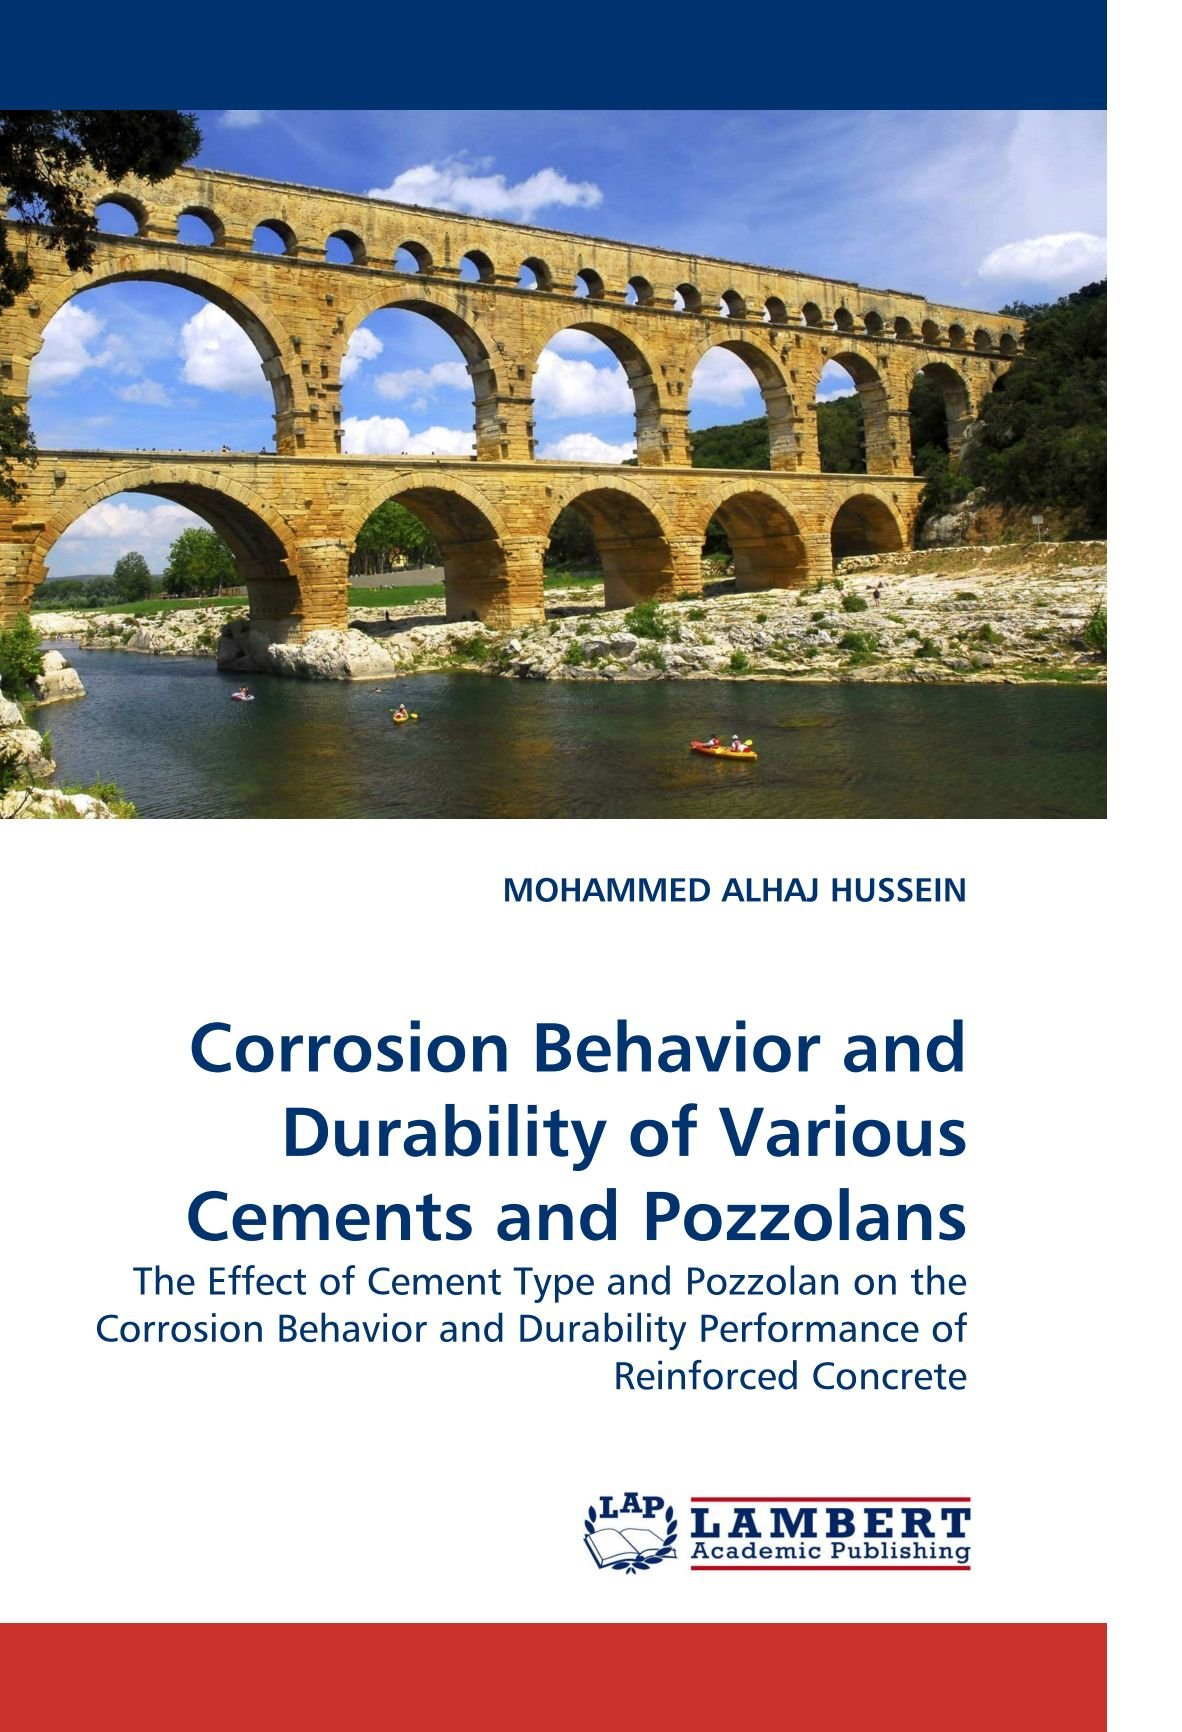 Corrosion Behavior and Durability of Various Cements and Pozzolans: The Effect of Cement Type and Pozzolan on the Corrosion Behavior and Durability Performance of Reinforced Concrete PDF